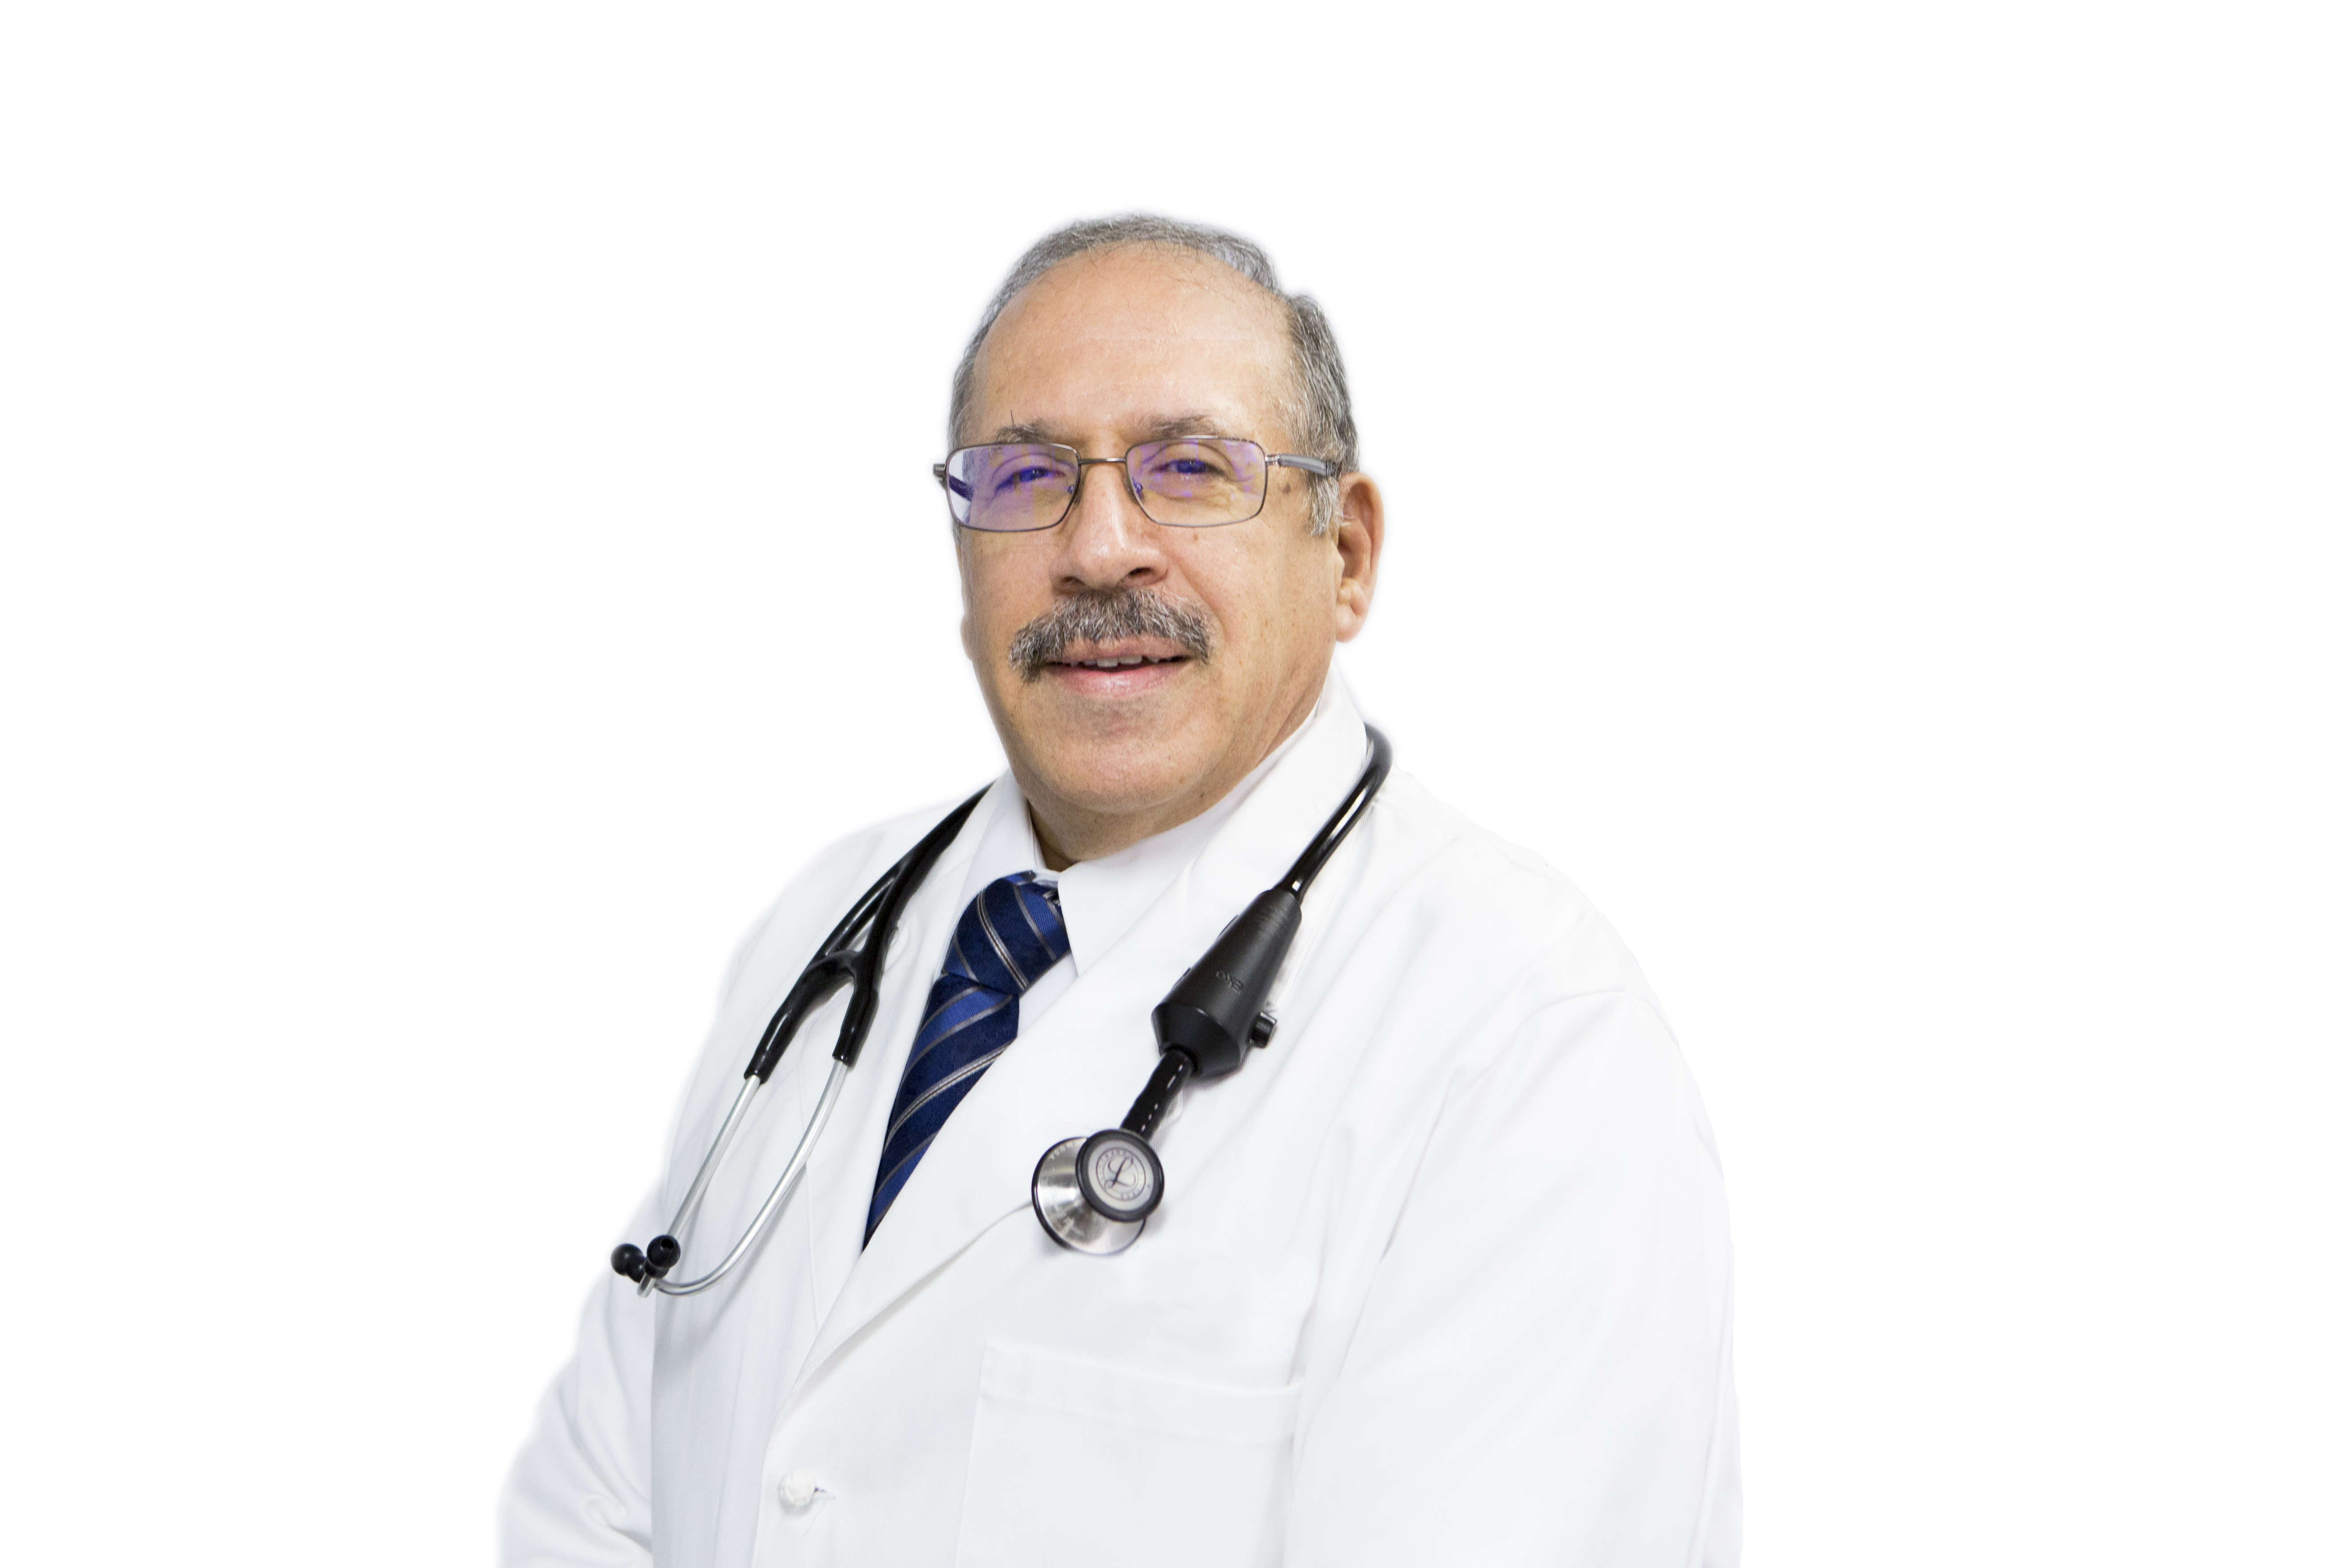 Dr. Paiano, DO